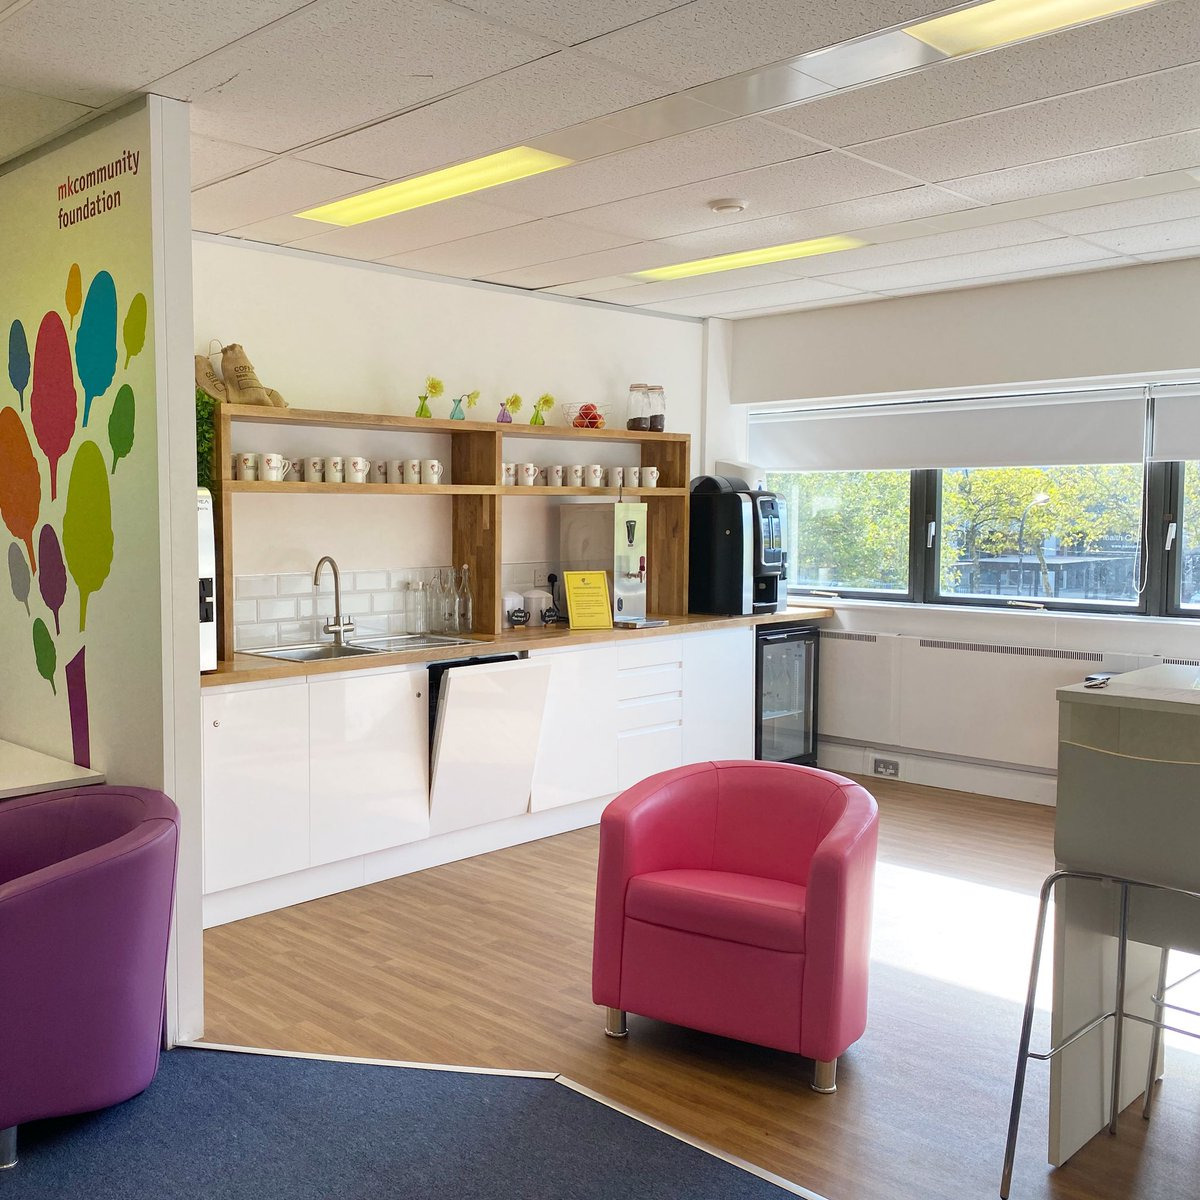 We're proud of our bright, clean, modern #meetingfacilities in #MiltonKeynes. We're even PROUDER that all our profits are put back into supporting the amazing work of local community groups & charities 💛 Book a meeting room & help us on our mission https://t.co/y05BdyD9Qh ✨ https://t.co/S453uDPTWT